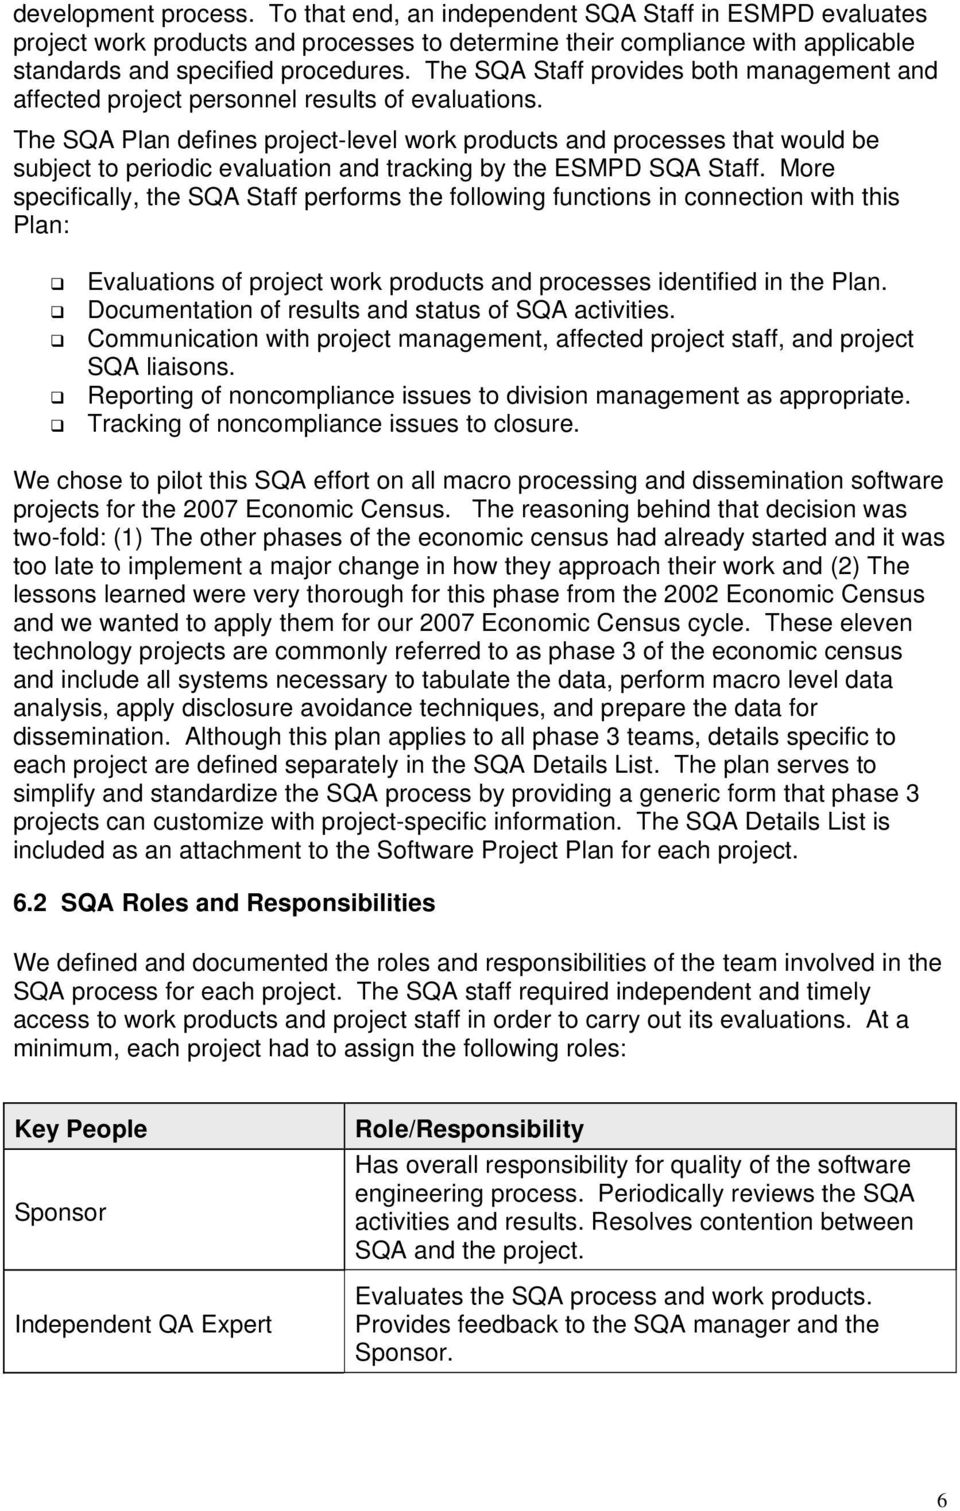 The SQA Plan defines project-level work products and processes that would be subject to periodic evaluation and tracking by the ESMPD SQA Staff.